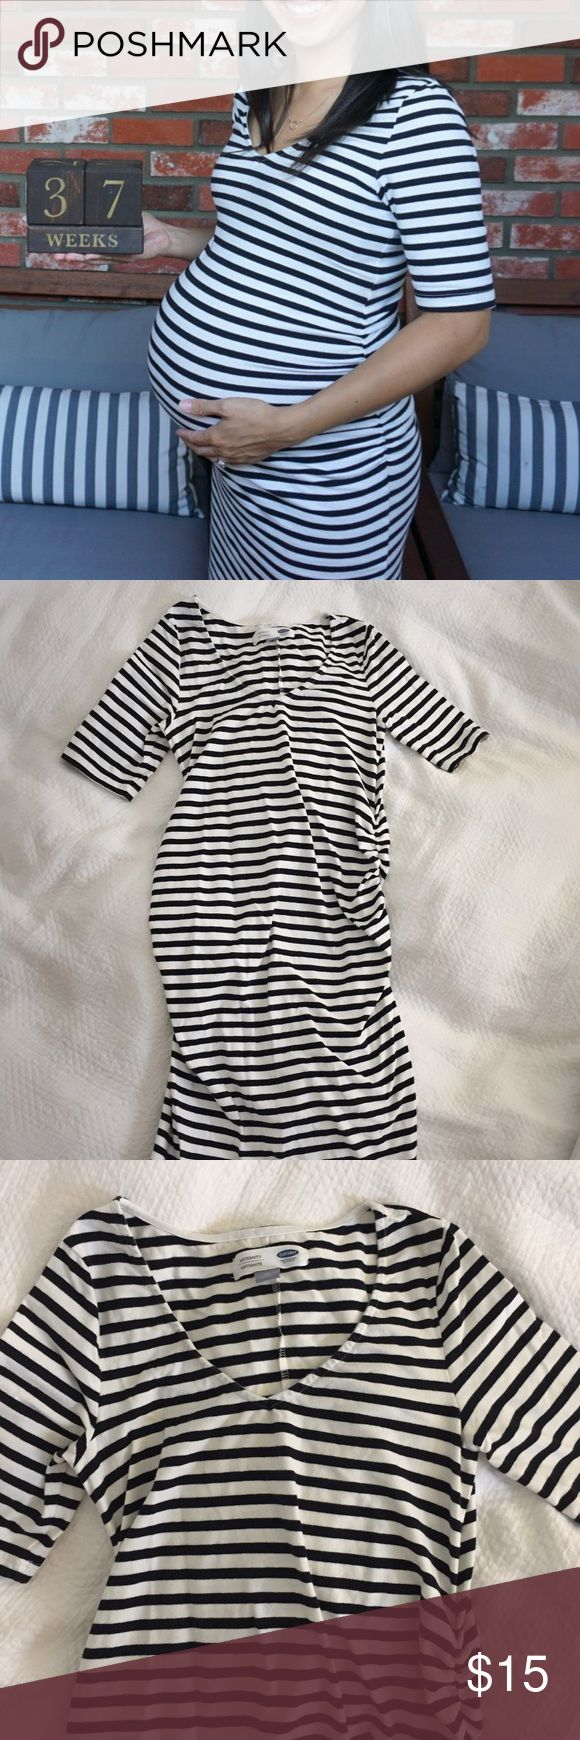 Striped Maternity Dress Black and white striped maternity dress from Old Navy with 1/2 sleeves. Stretchy and super comfortable/soft fabric with lots of room for a growing belly. One of my favorites; very classic and versatile. In good condition. Old Navy Dresses